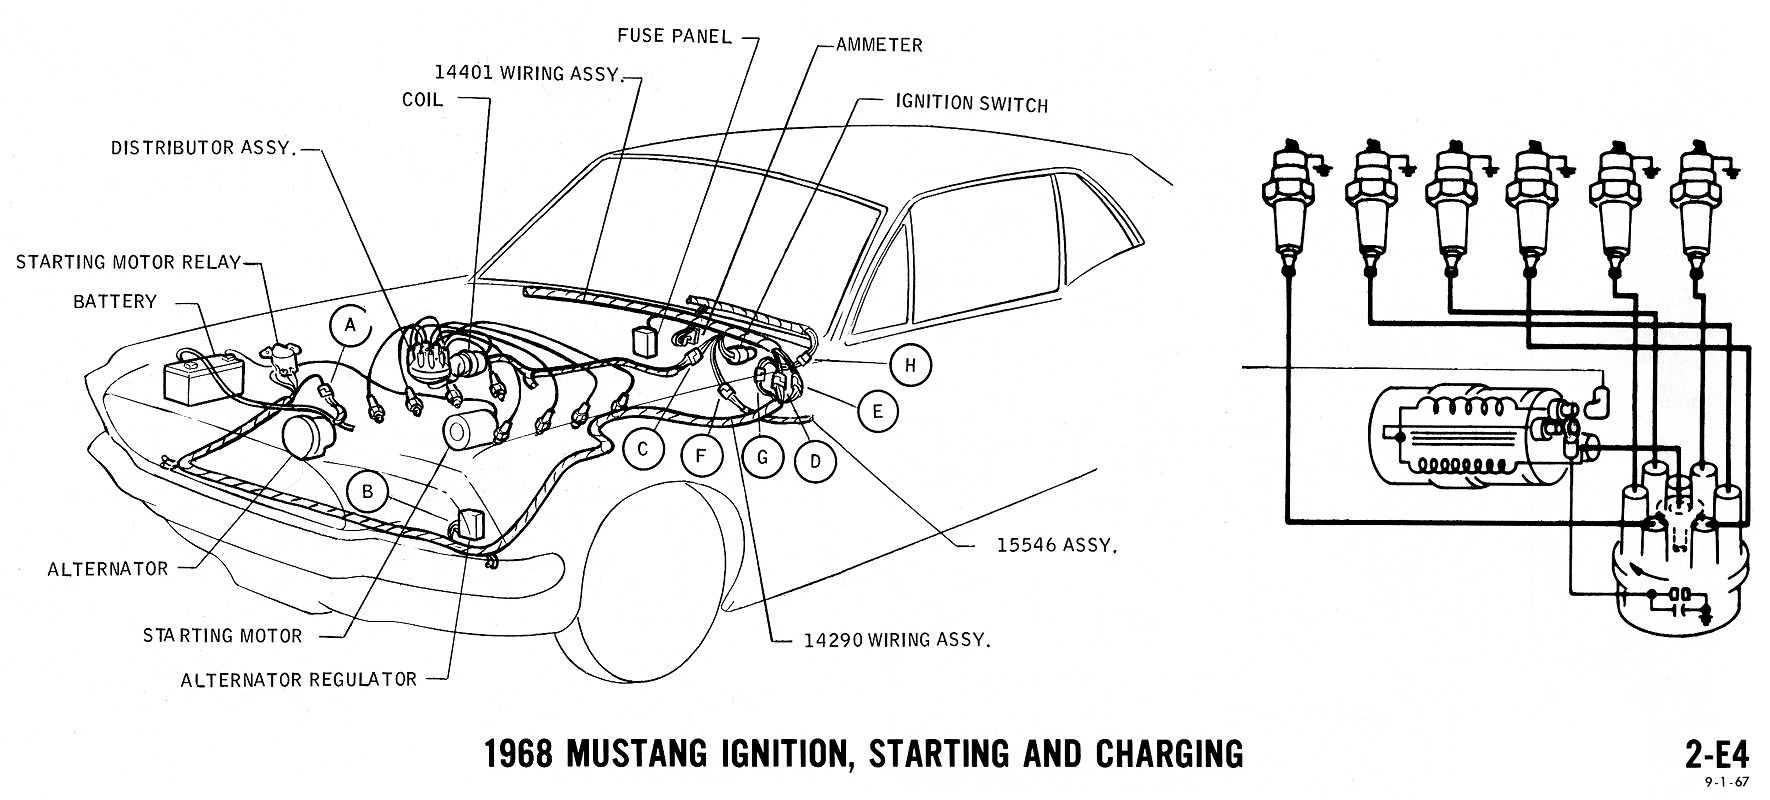 E4 1968 mustang wiring diagrams evolving software 1969 mustang ignition switch wiring diagram at soozxer.org